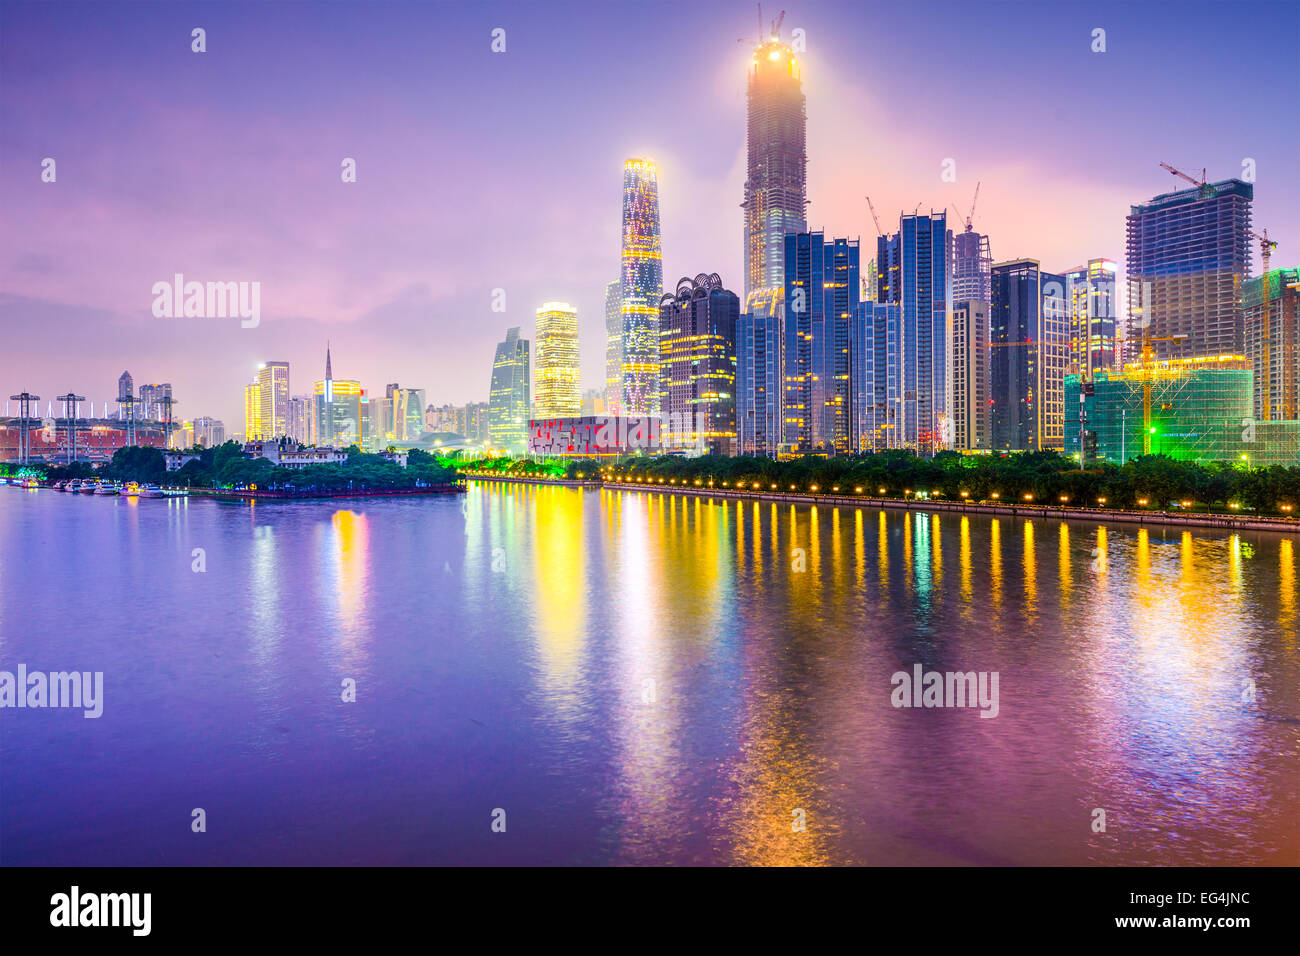 Guangzhou, China cityscape over the Pearl River. - Stock Image